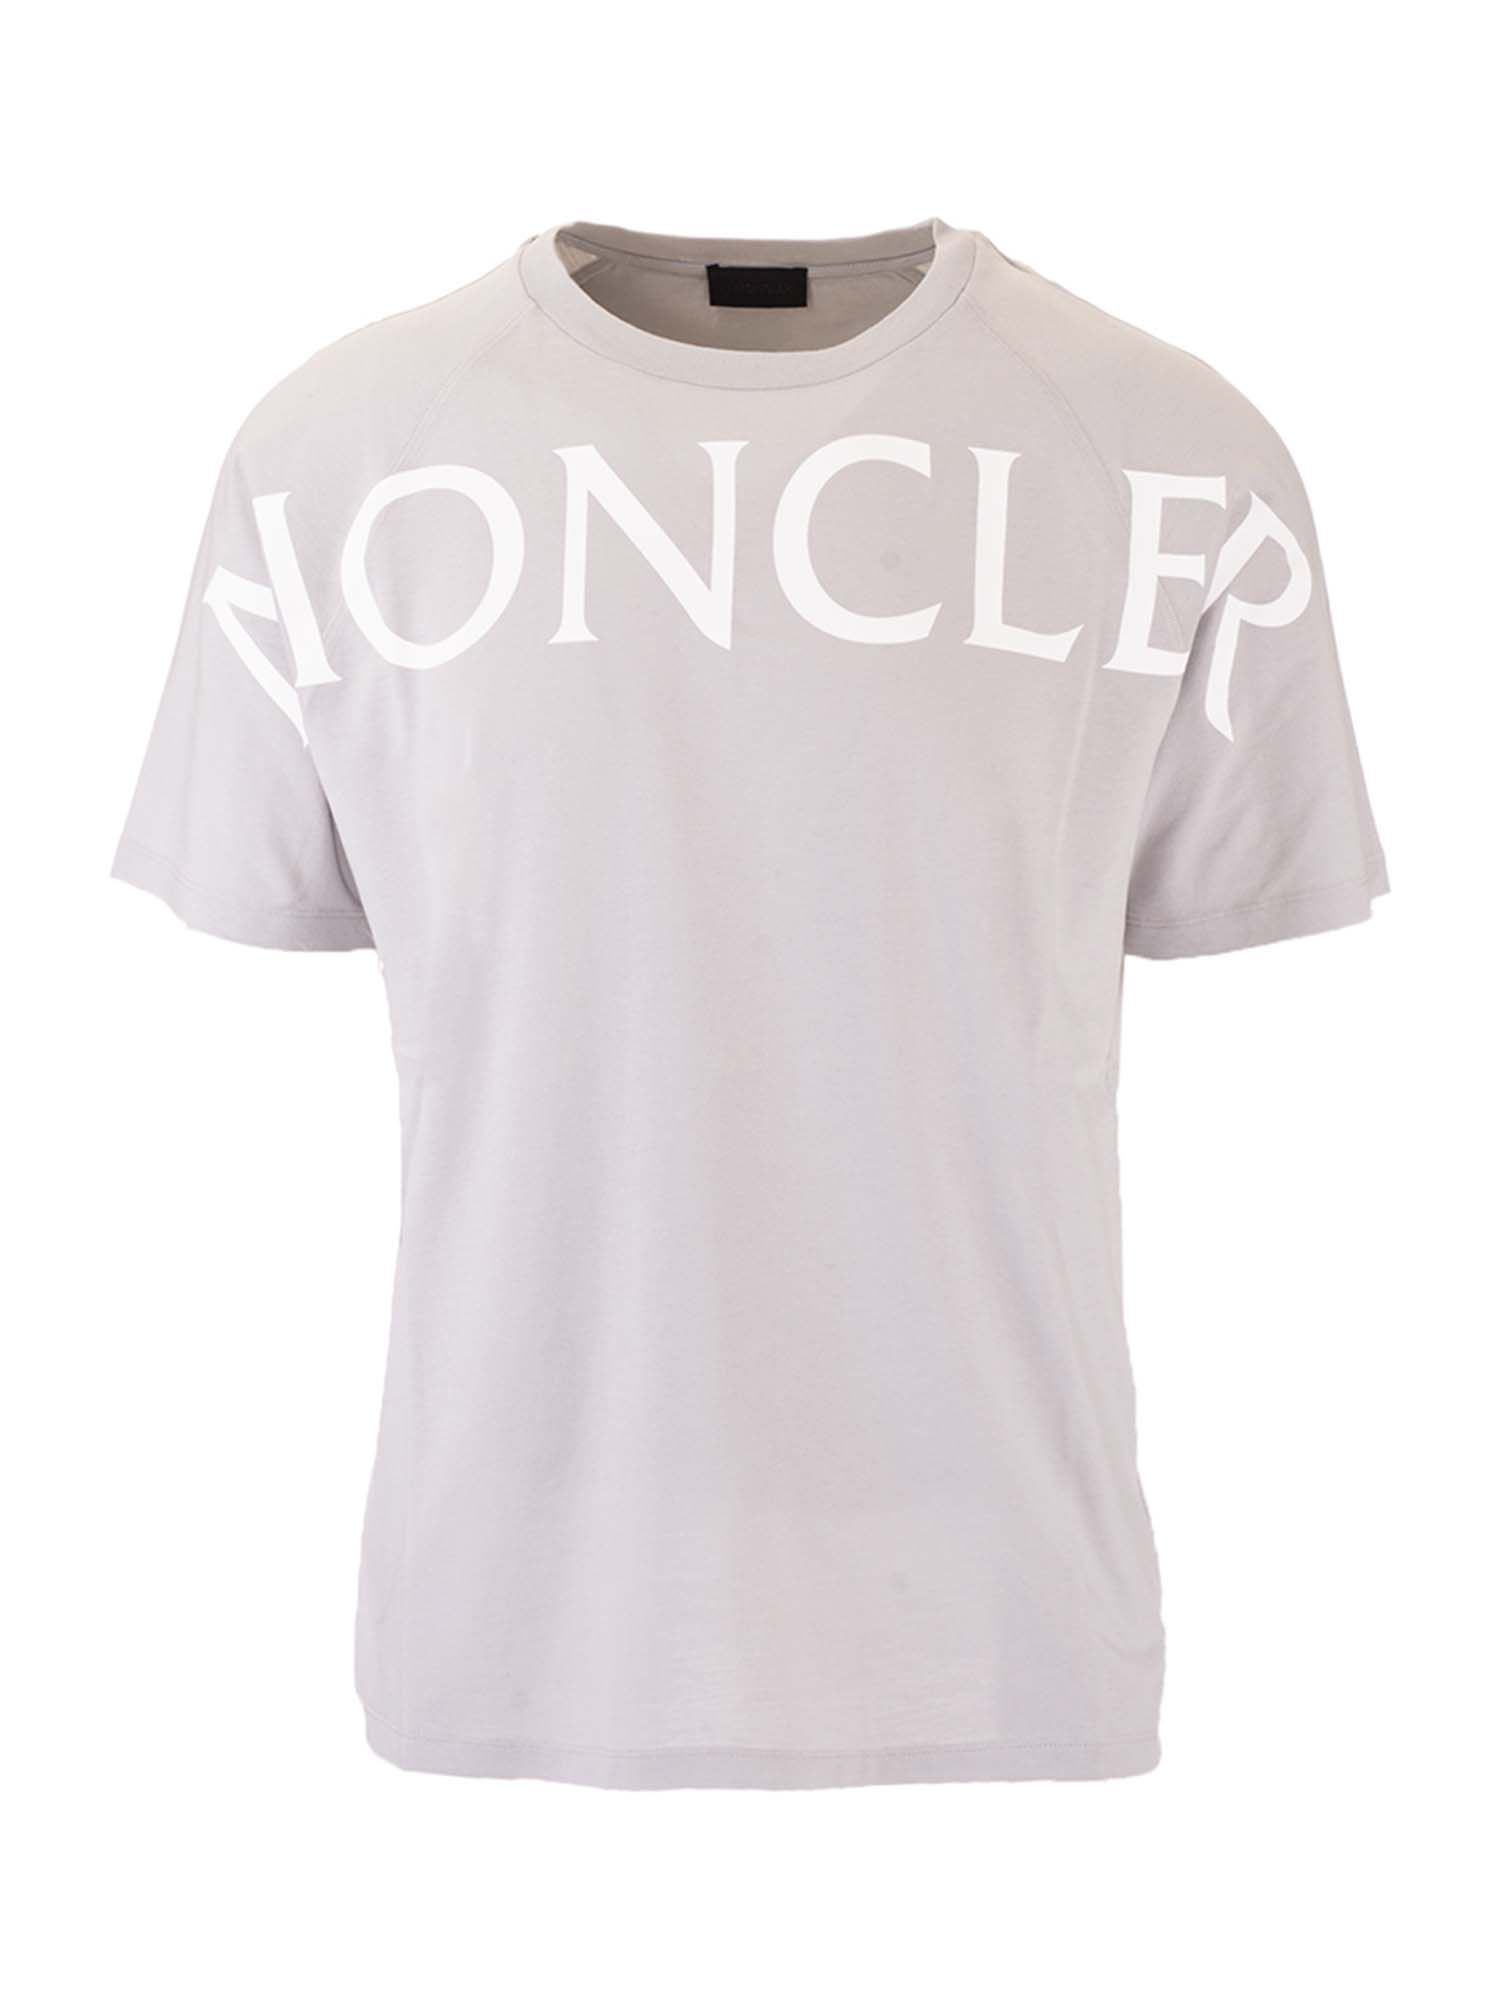 Moncler Grenoble MONCLER T-SHIRT IN GRAY